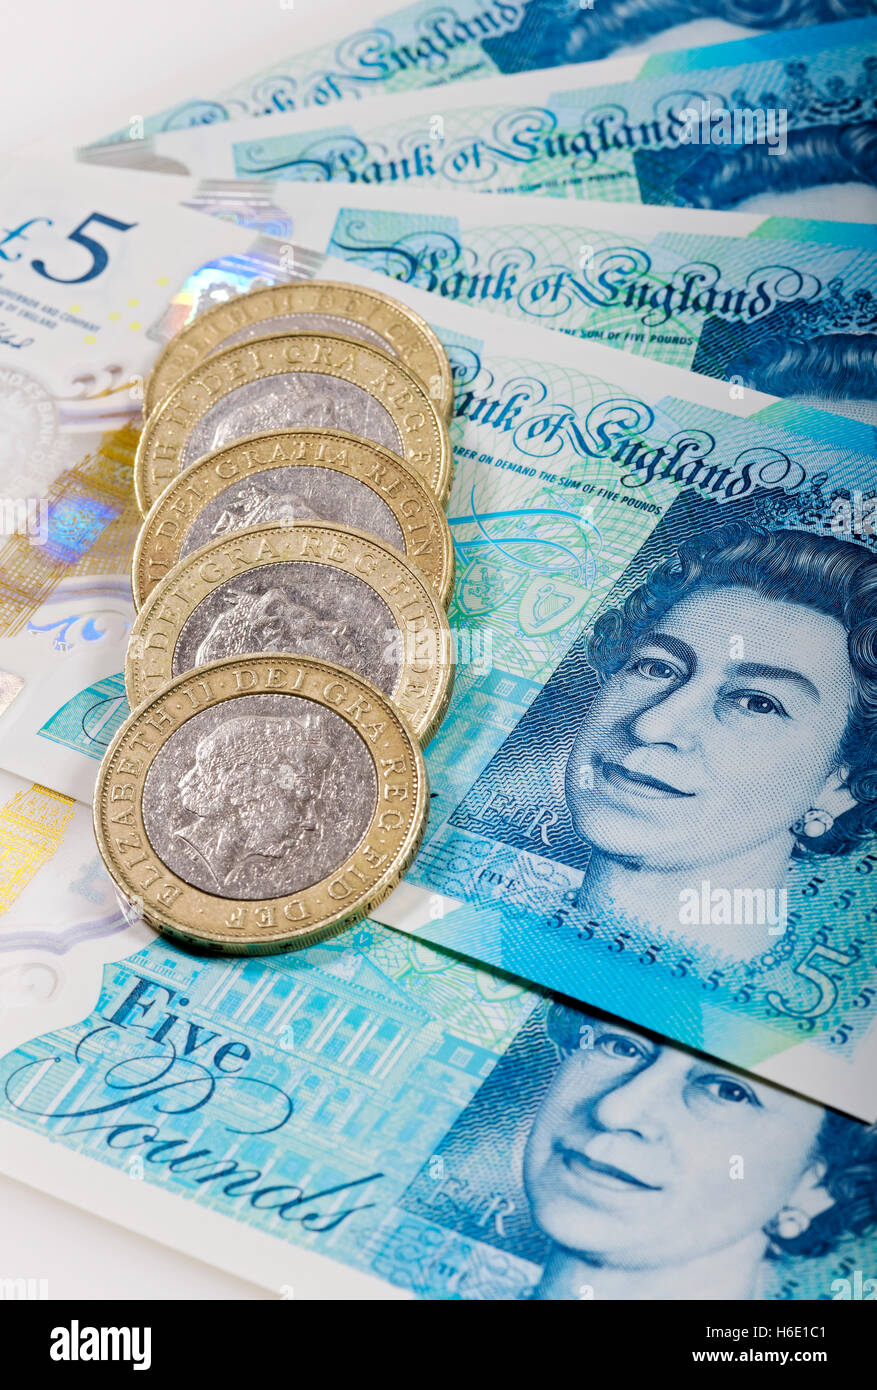 New polymer five pound notes and two pound coins England UK United Kingdom GB Great Britain - Stock Image